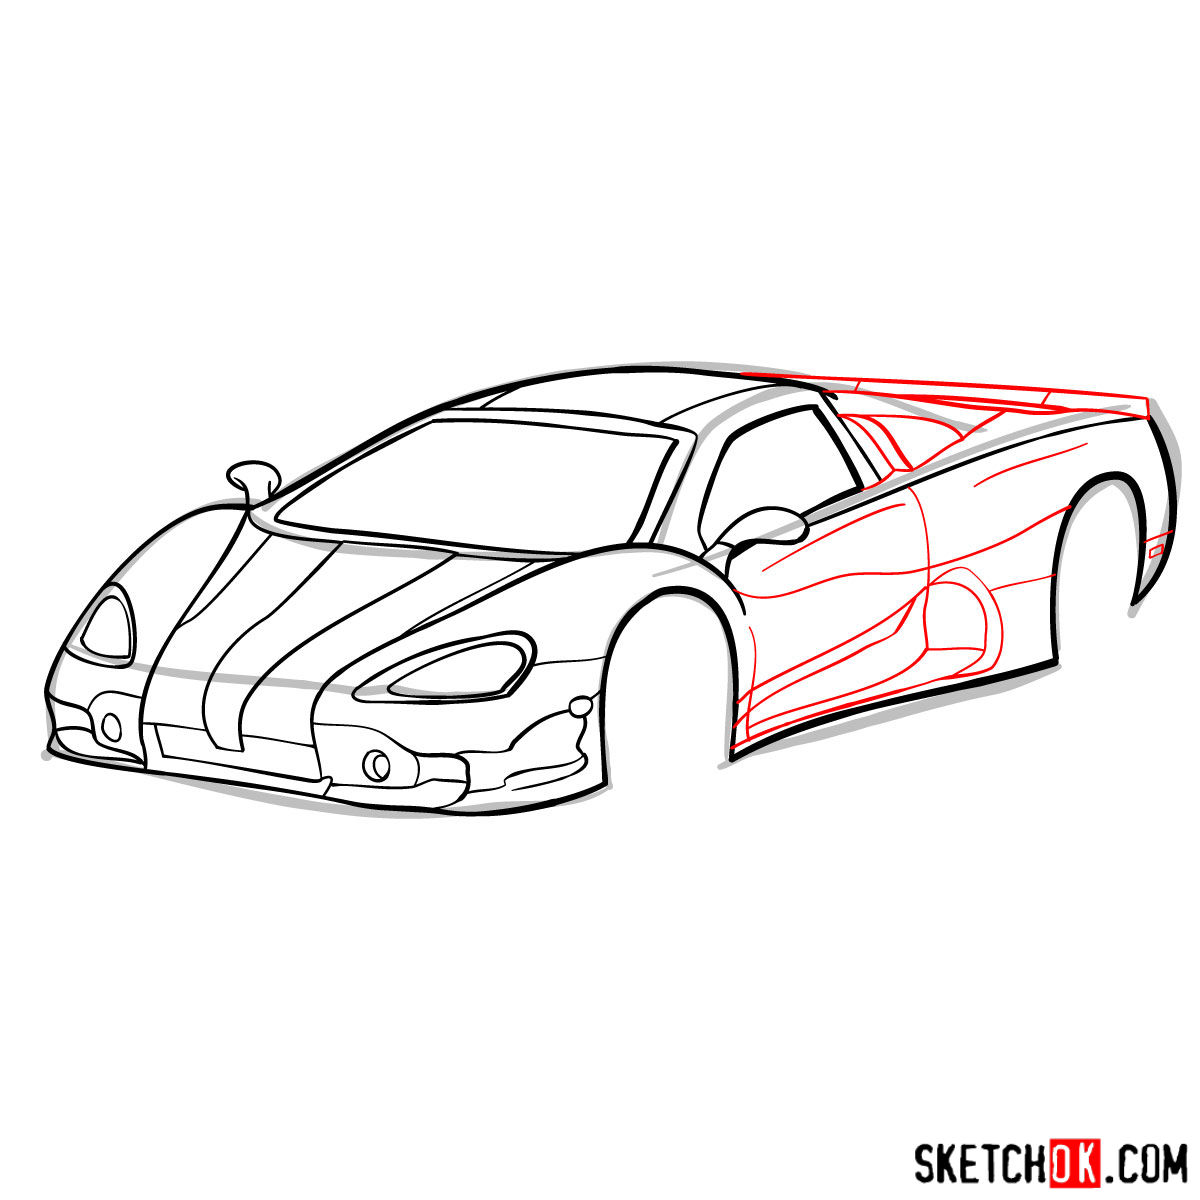 How to draw SSC Ultimate Aero TT 2006 - step 08